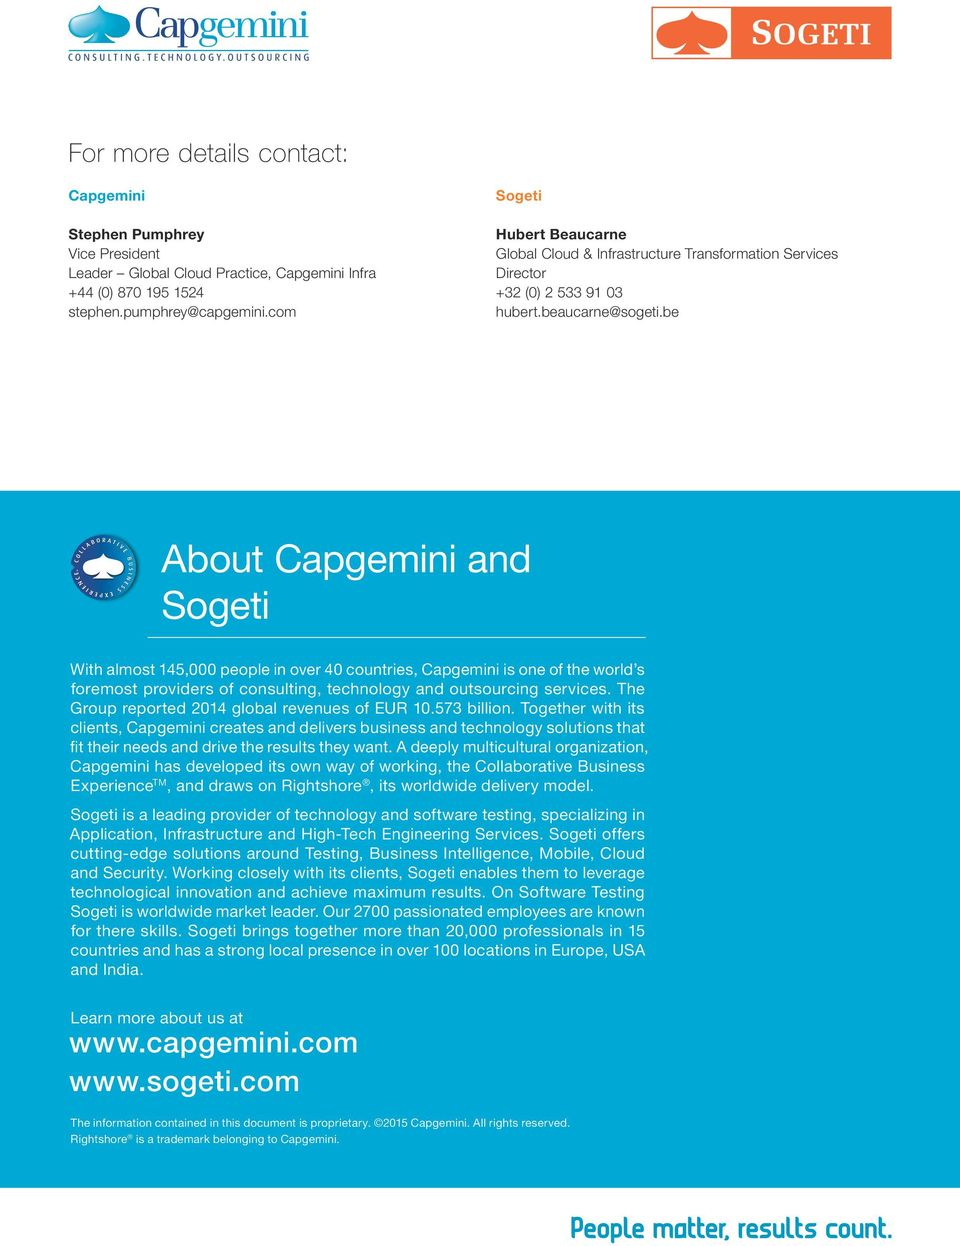 be About Capgemini and Sogeti With almost 145,000 people in over 40 countries, Capgemini is one of the world s foremost providers of consulting, technology and outsourcing services.